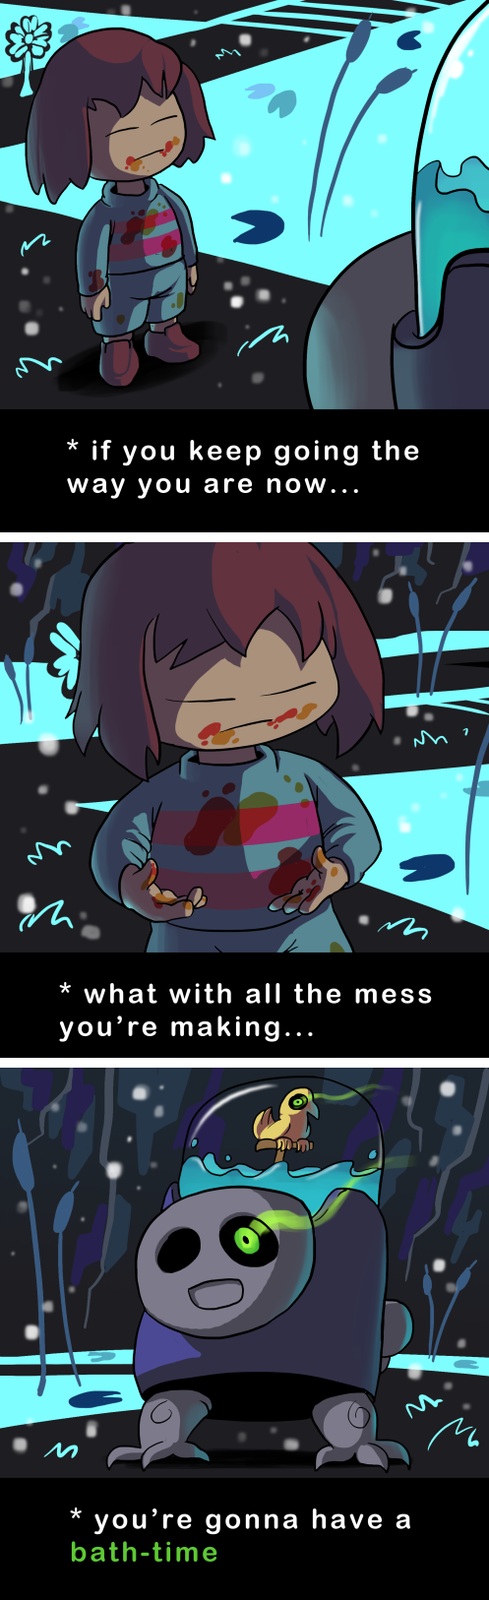 Undertale - Page 2 Cce